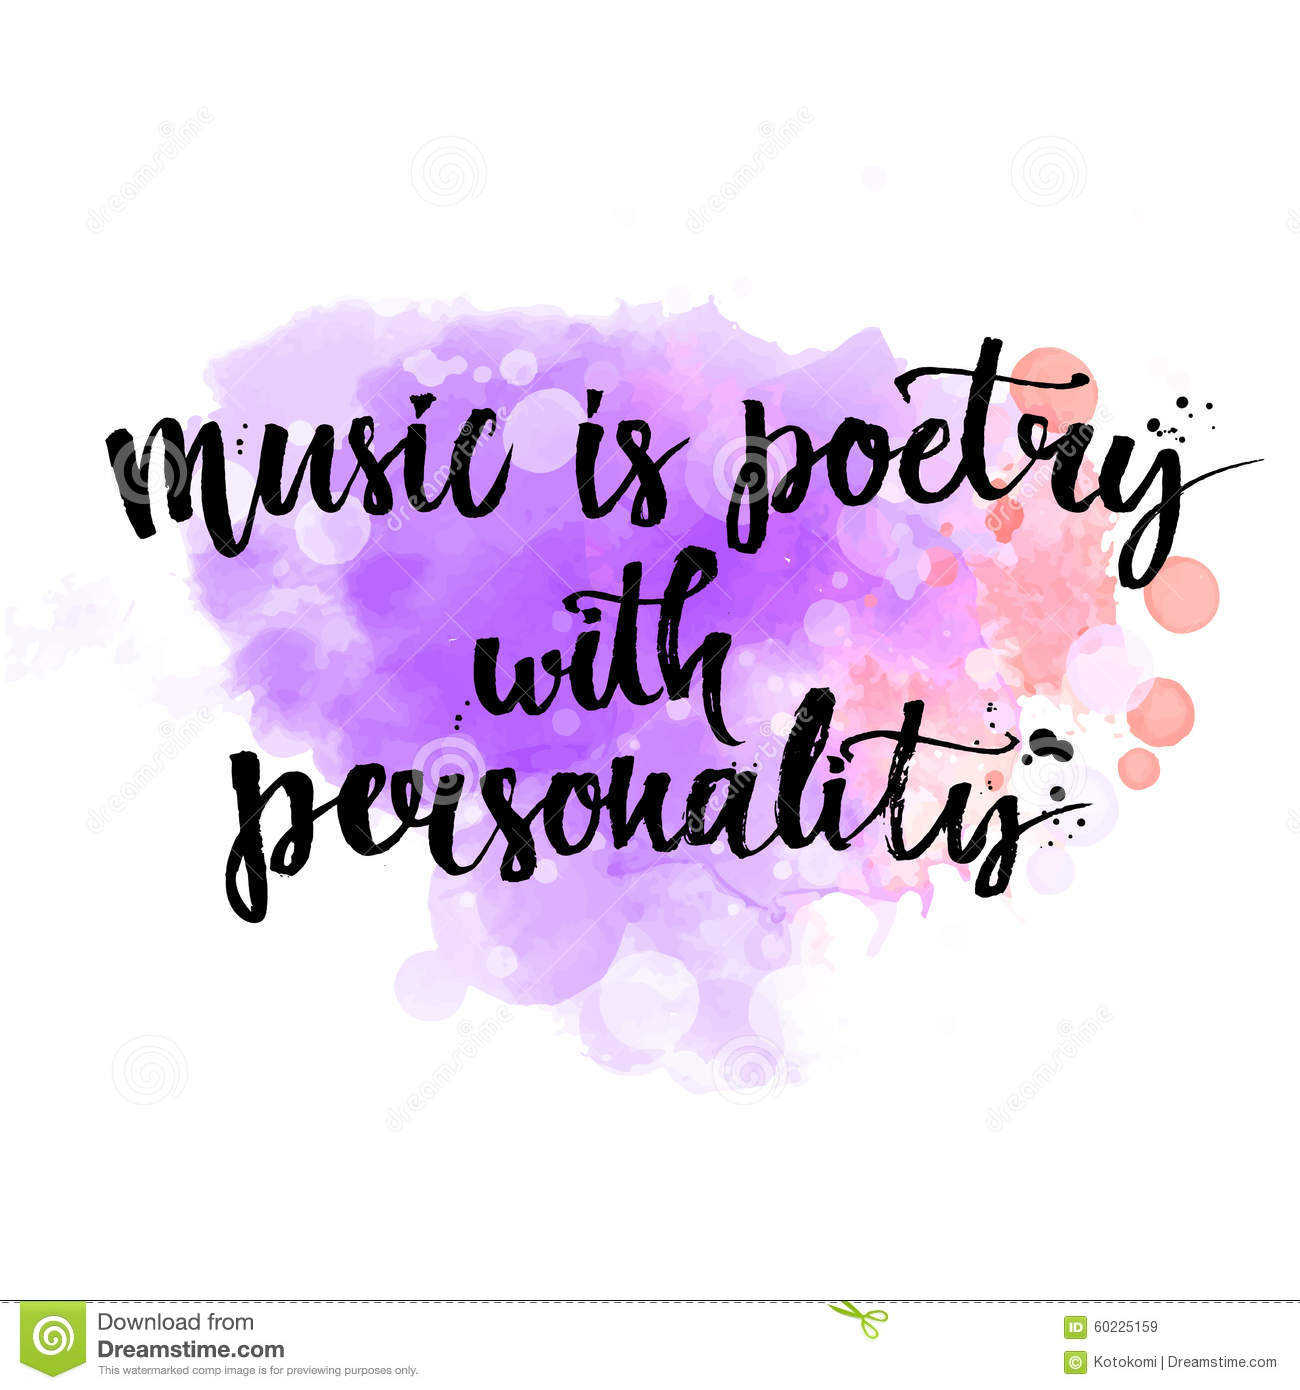 music and personality What your taste in music says about you chamorro-premuzic t, furnham a personality and music: can traits explain how people use music in everyday life.